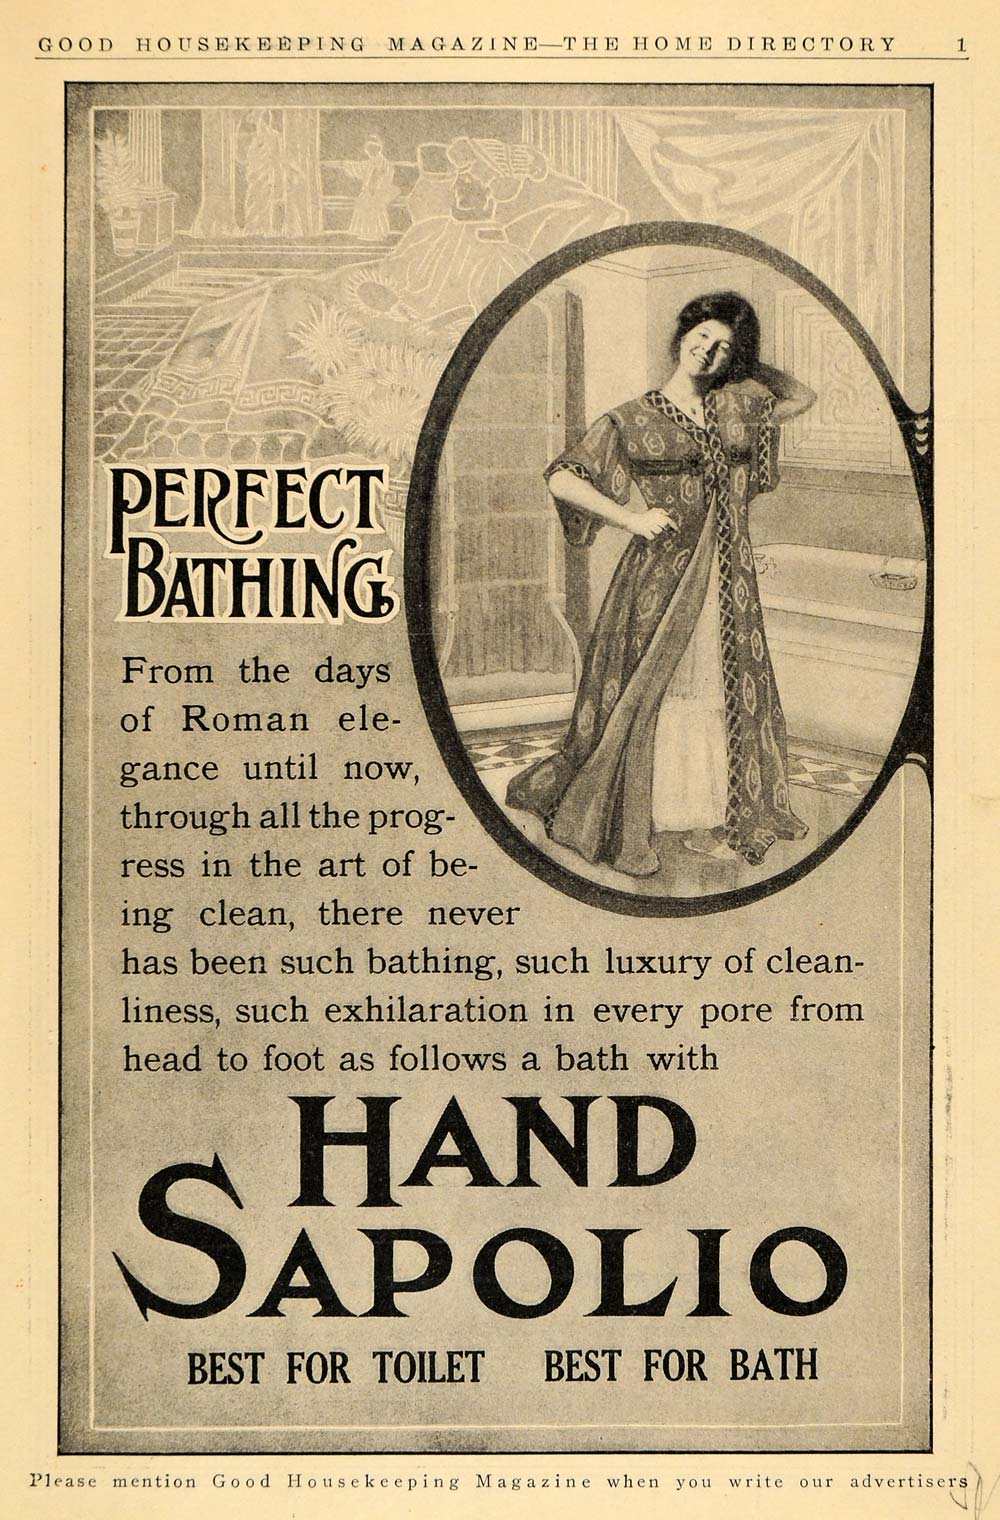 1911 Ad Hand Sapolio Toilet Bath Soap Woman Bathrobe - ORIGINAL ADVERTISING GH2